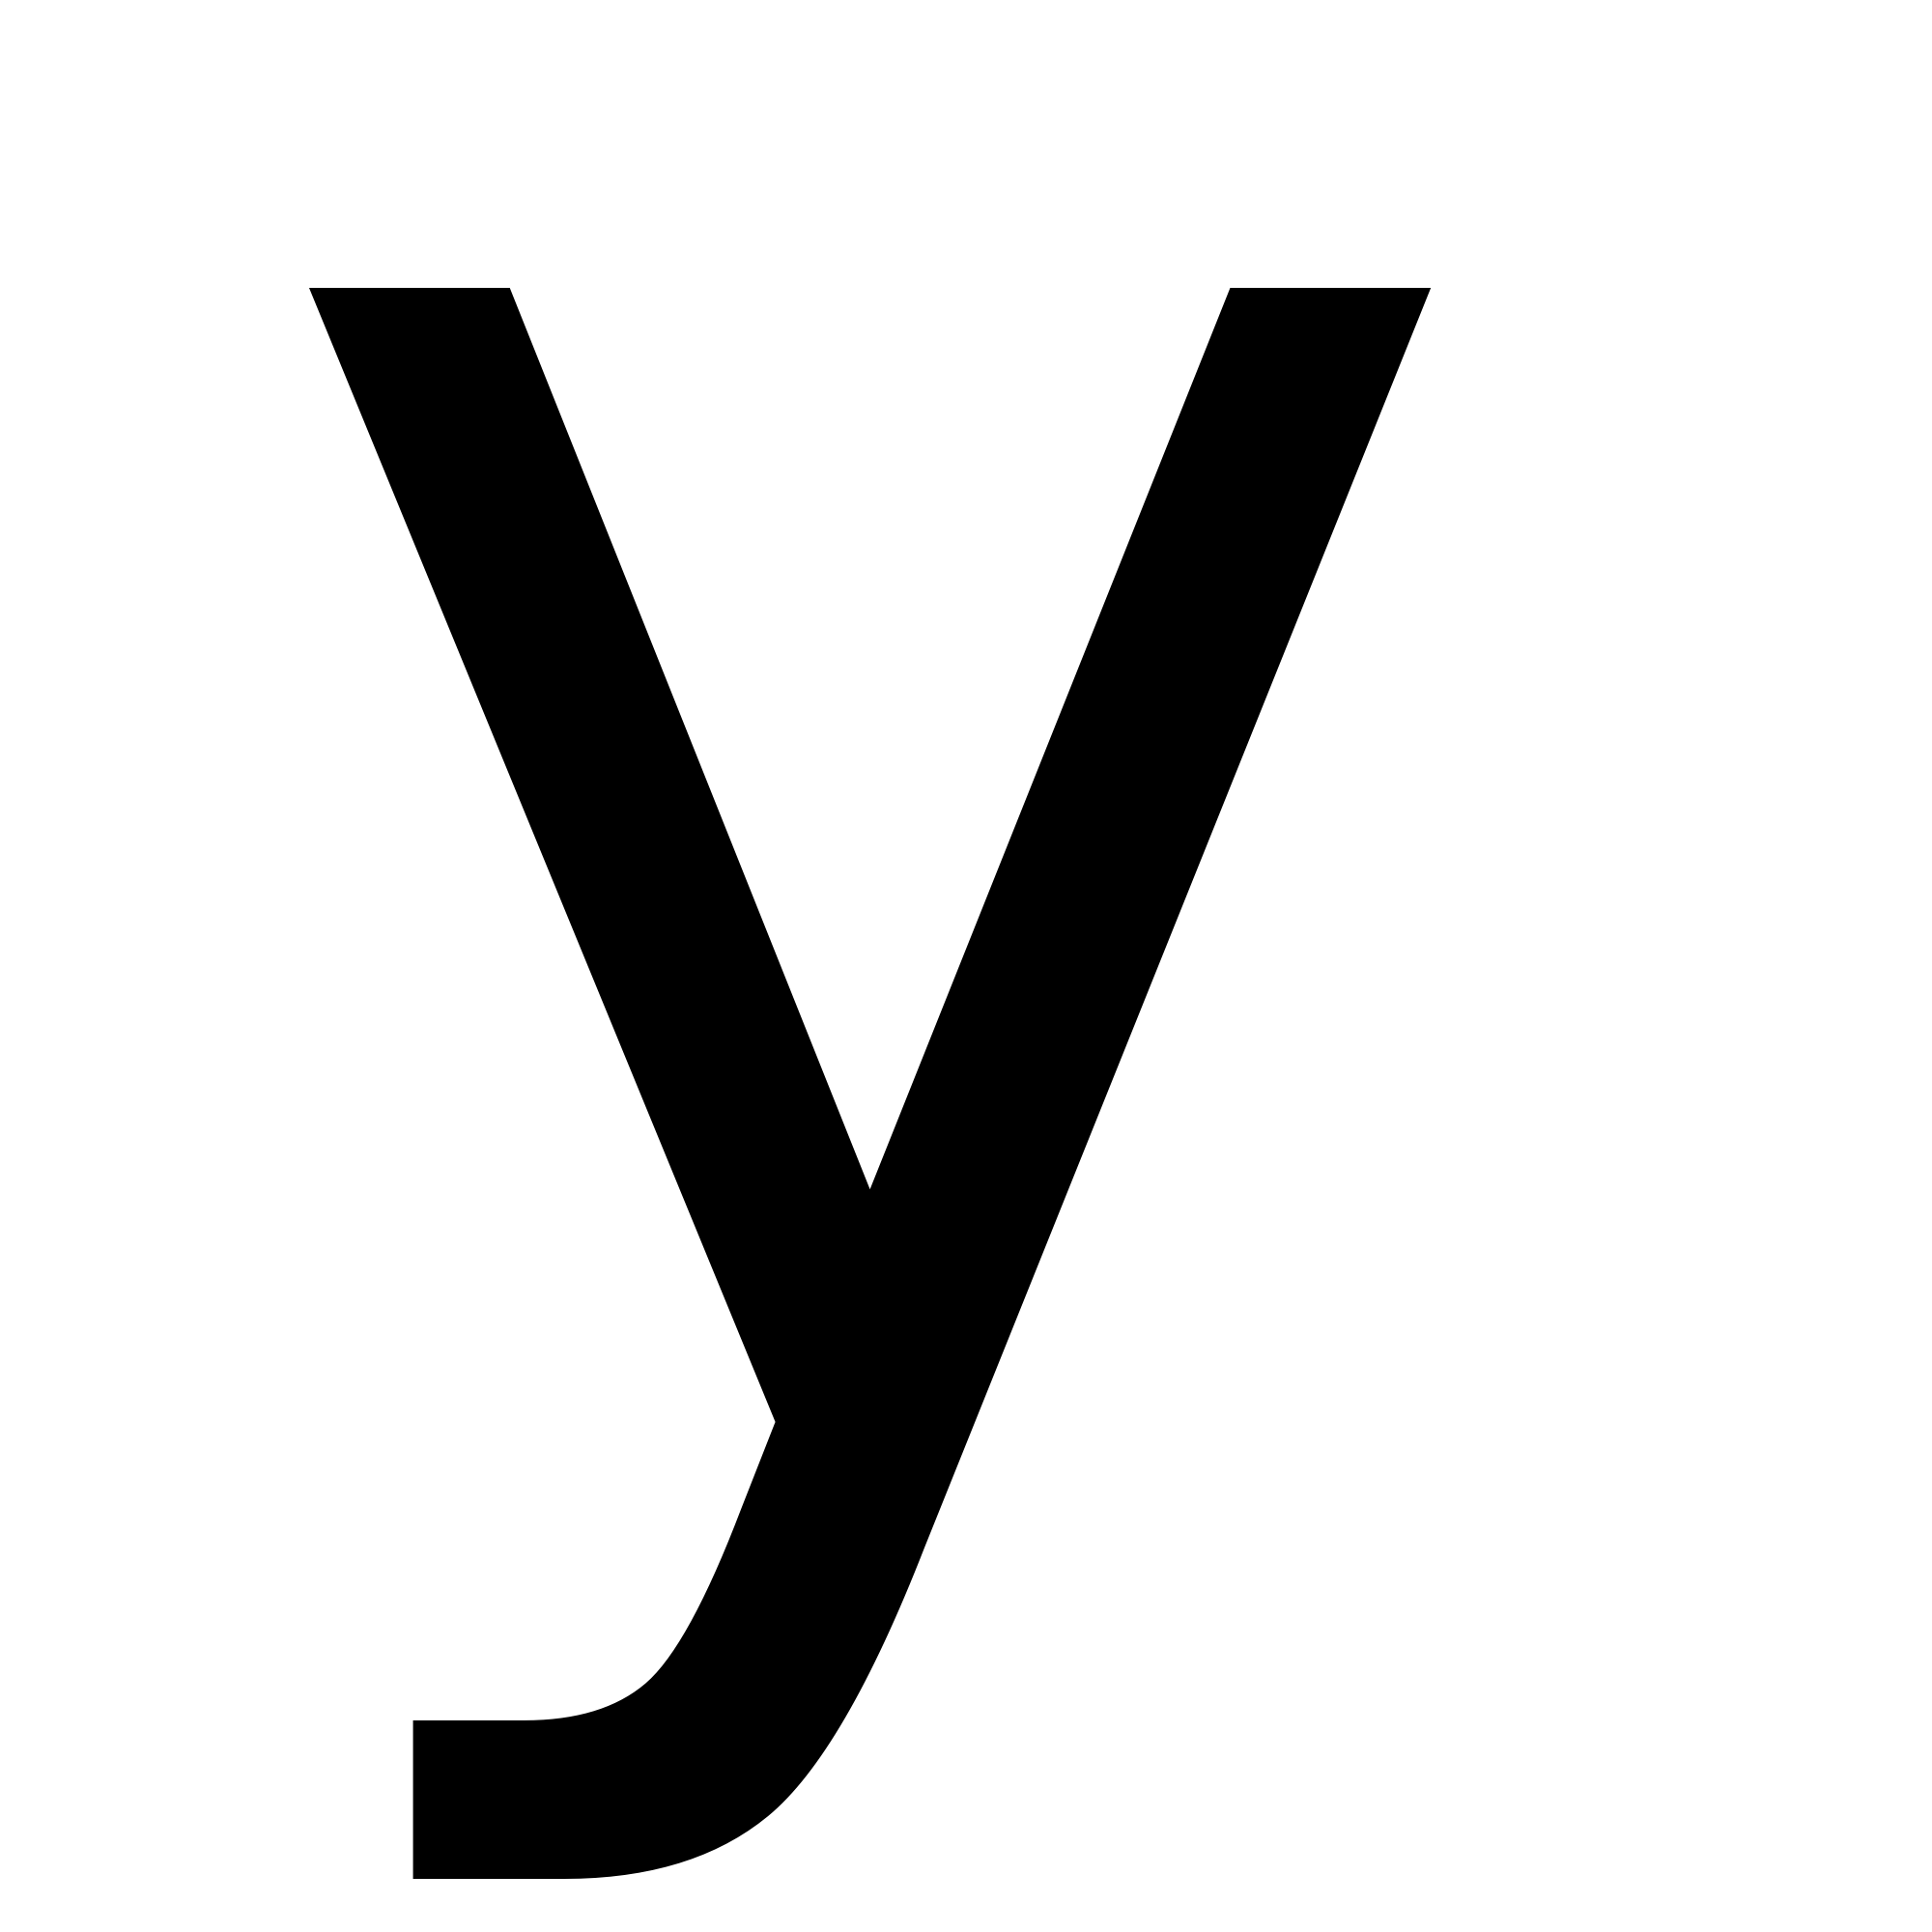 Letter y png. File svg wikimedia commons